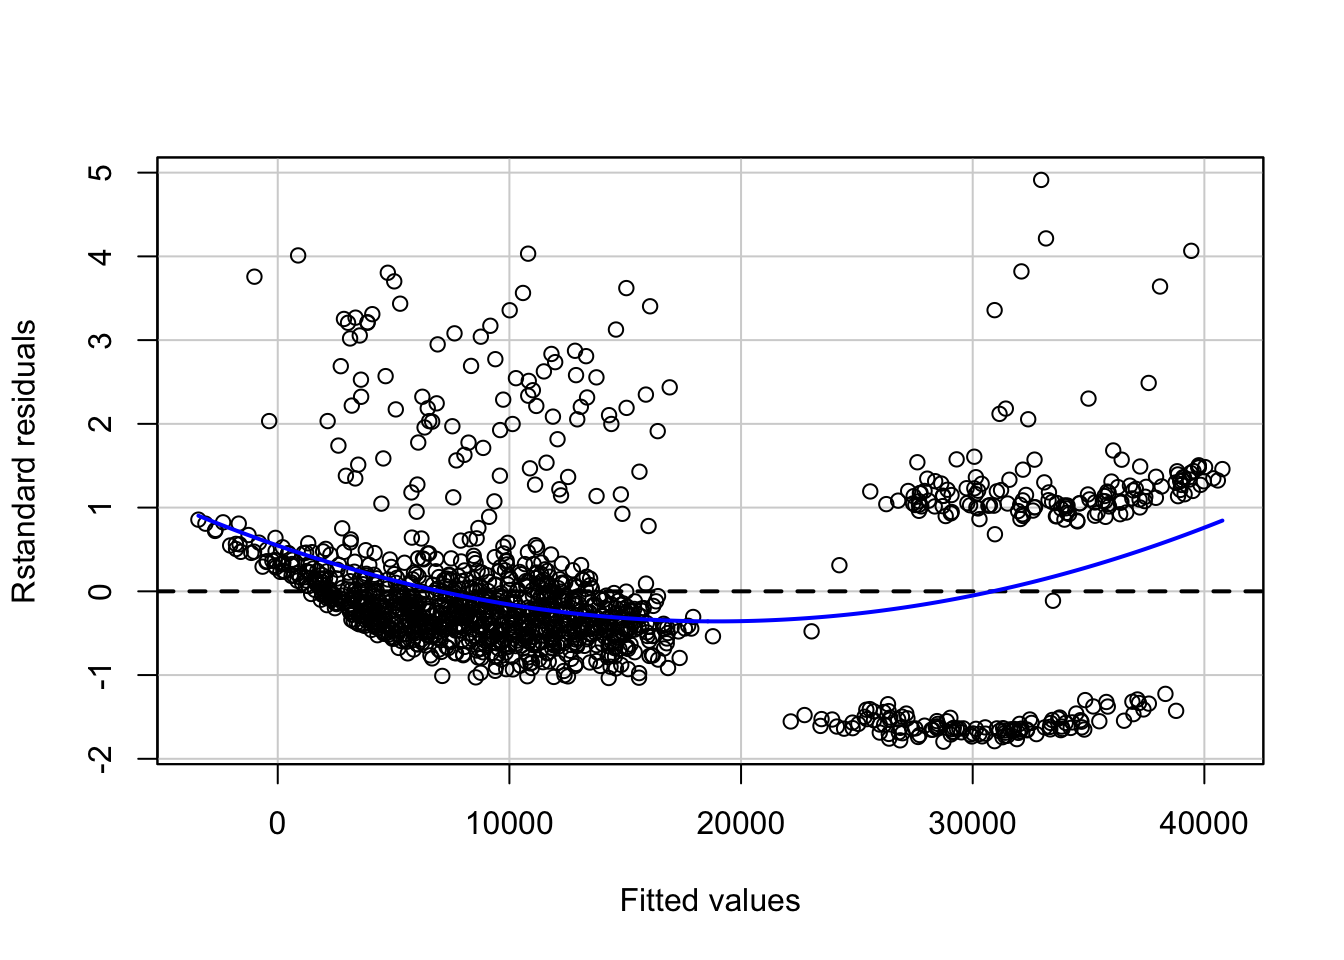 Linear regression: Modeling and Assumptions - Towards Data Science